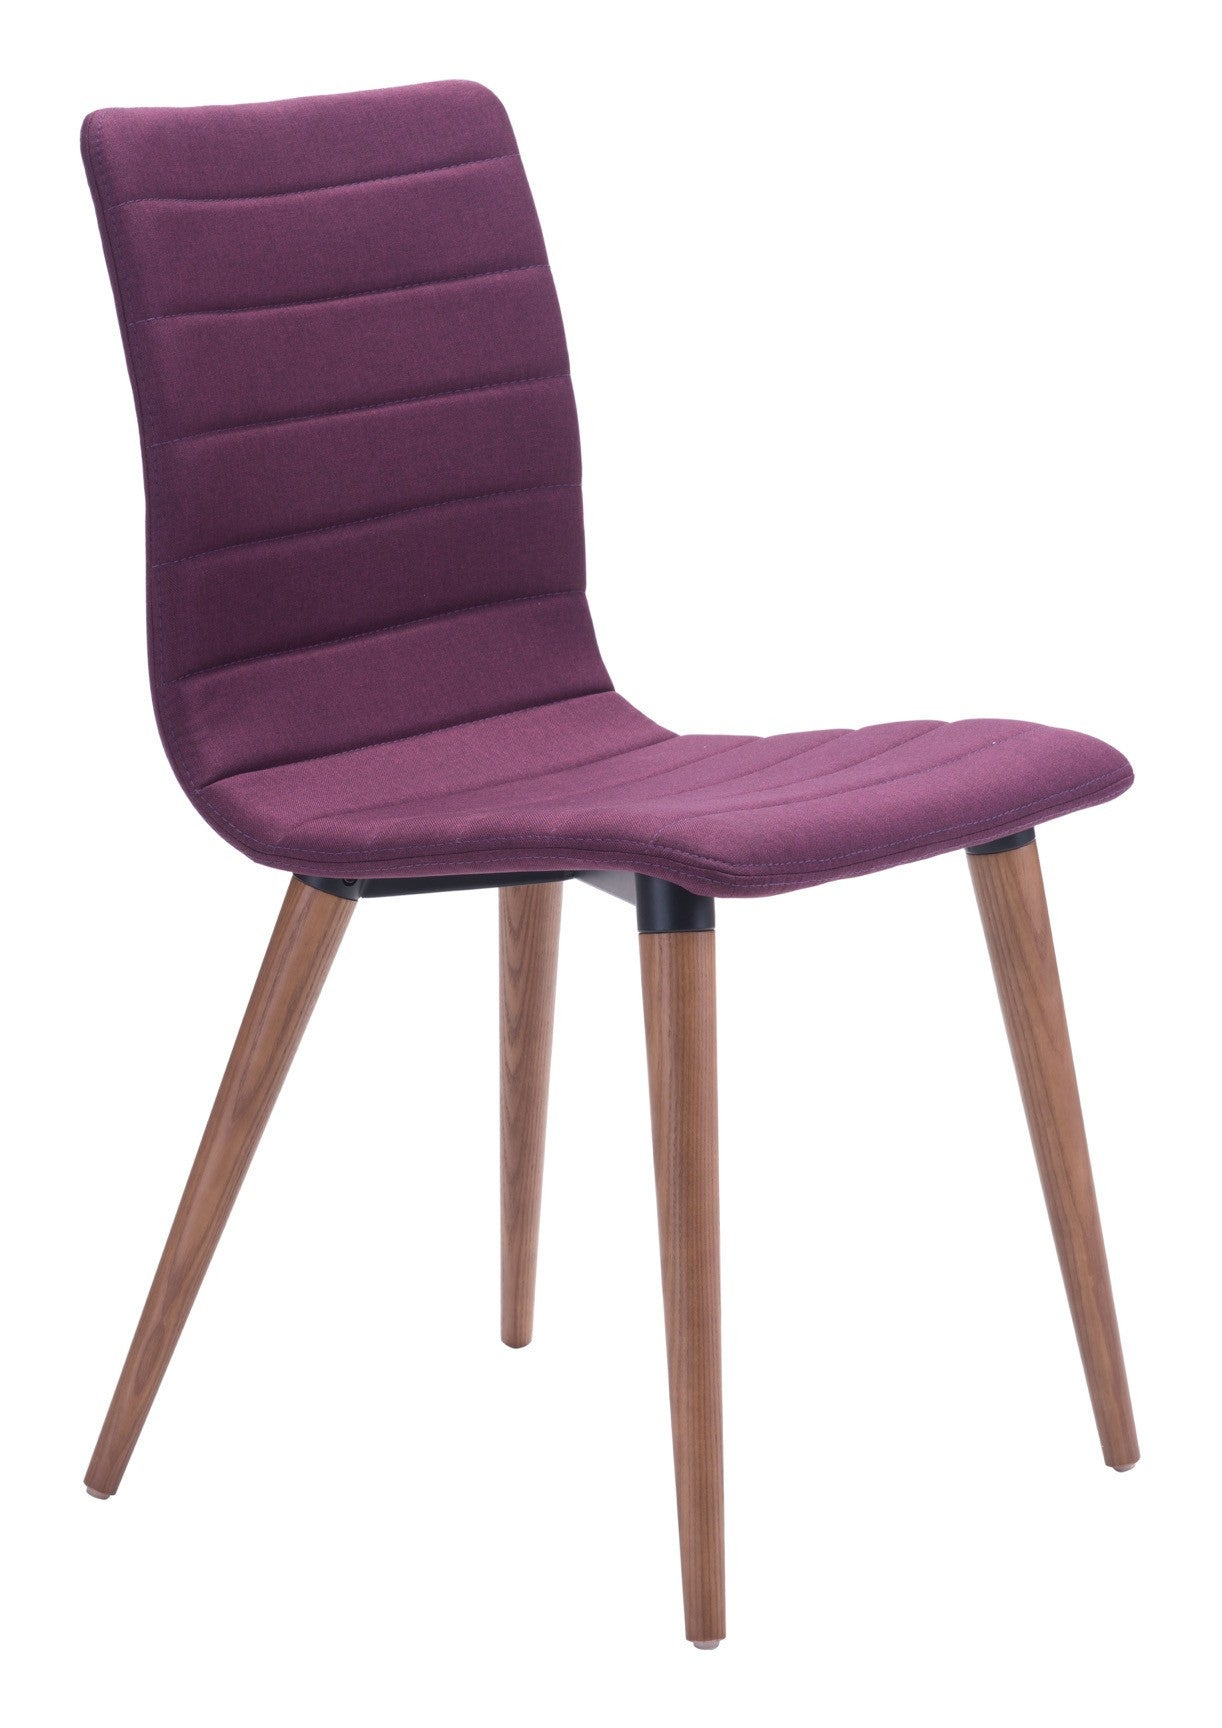 Jericho dining chair in purple fabric on tapered wood legs set of 2